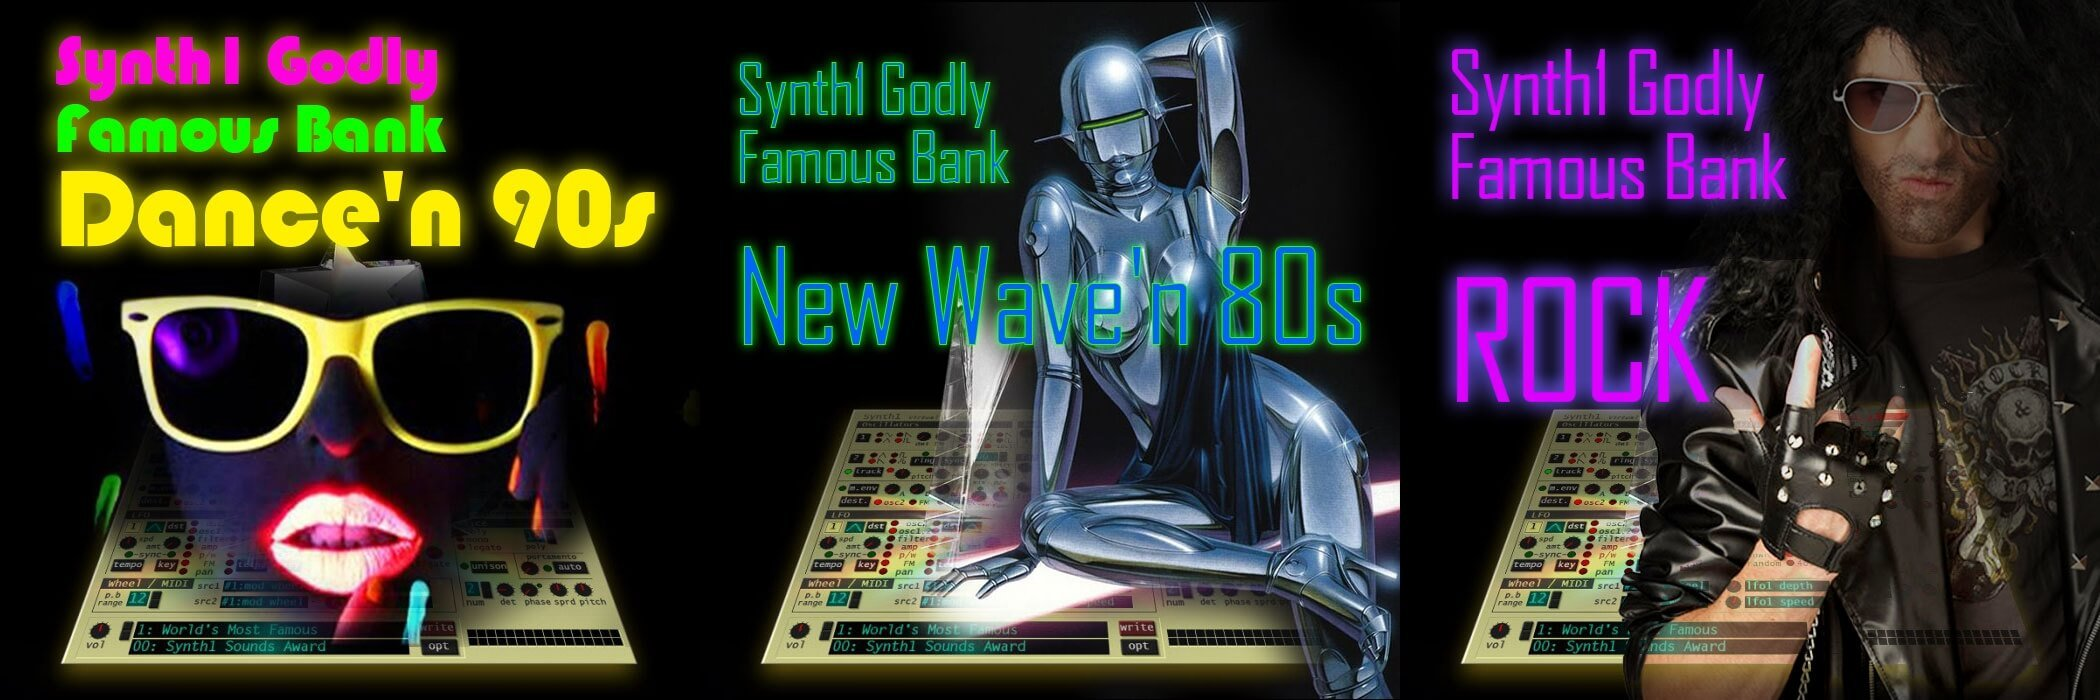 Dance'n 90s, New Wave'n 80s & Rock soundsets for Synth1